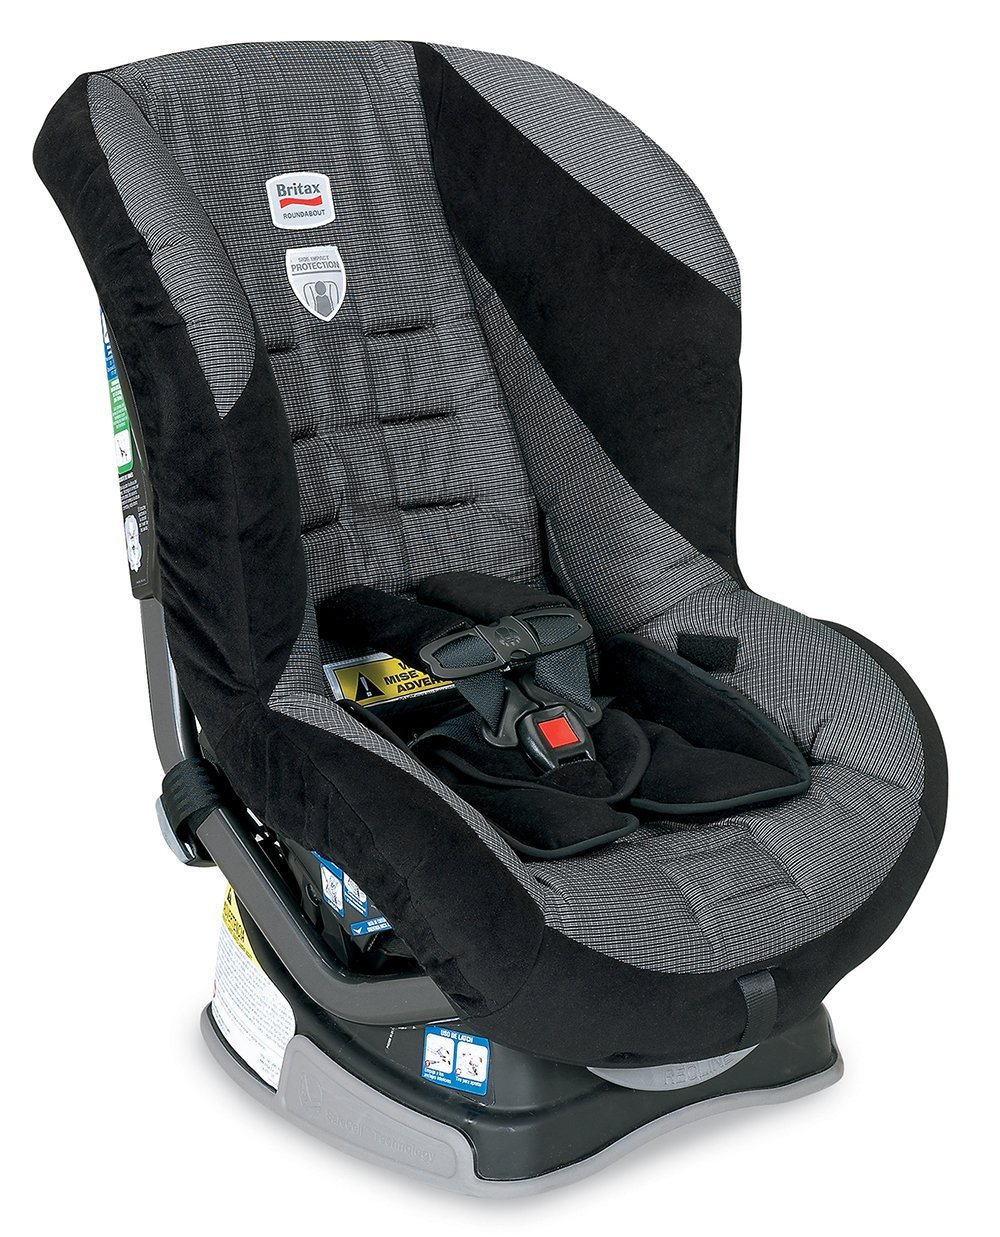 carseatblog the most trusted source for car seat reviews ratings rh carseatblog com Britax Boulevard Recall britax boulevard 70 user manual